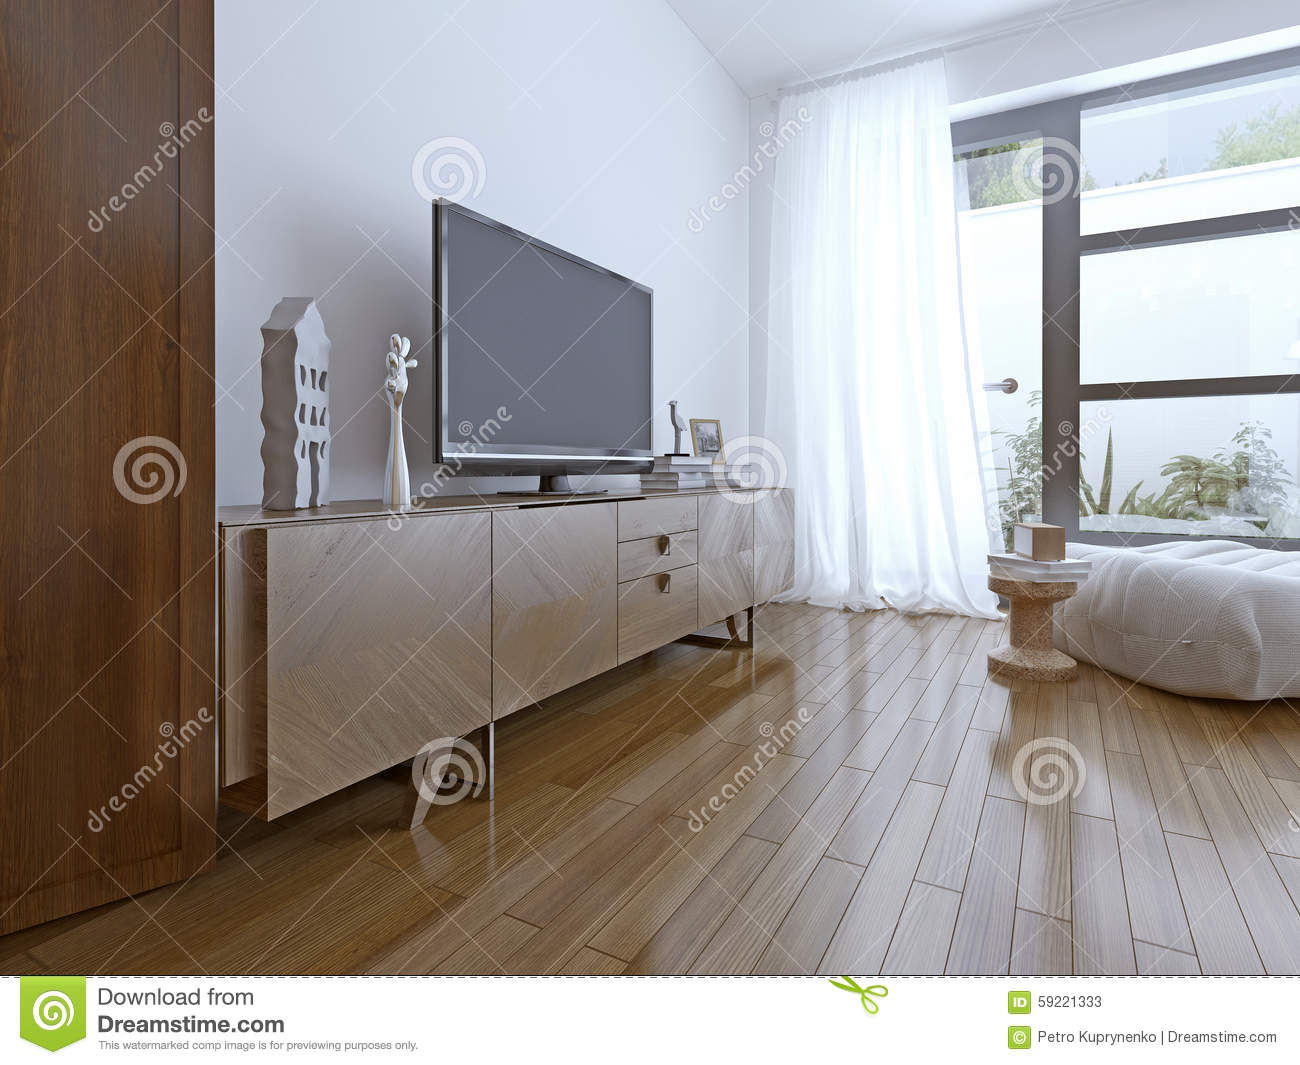 Tv Table On High-tech Bedroom Stock Image - Image of bench ...